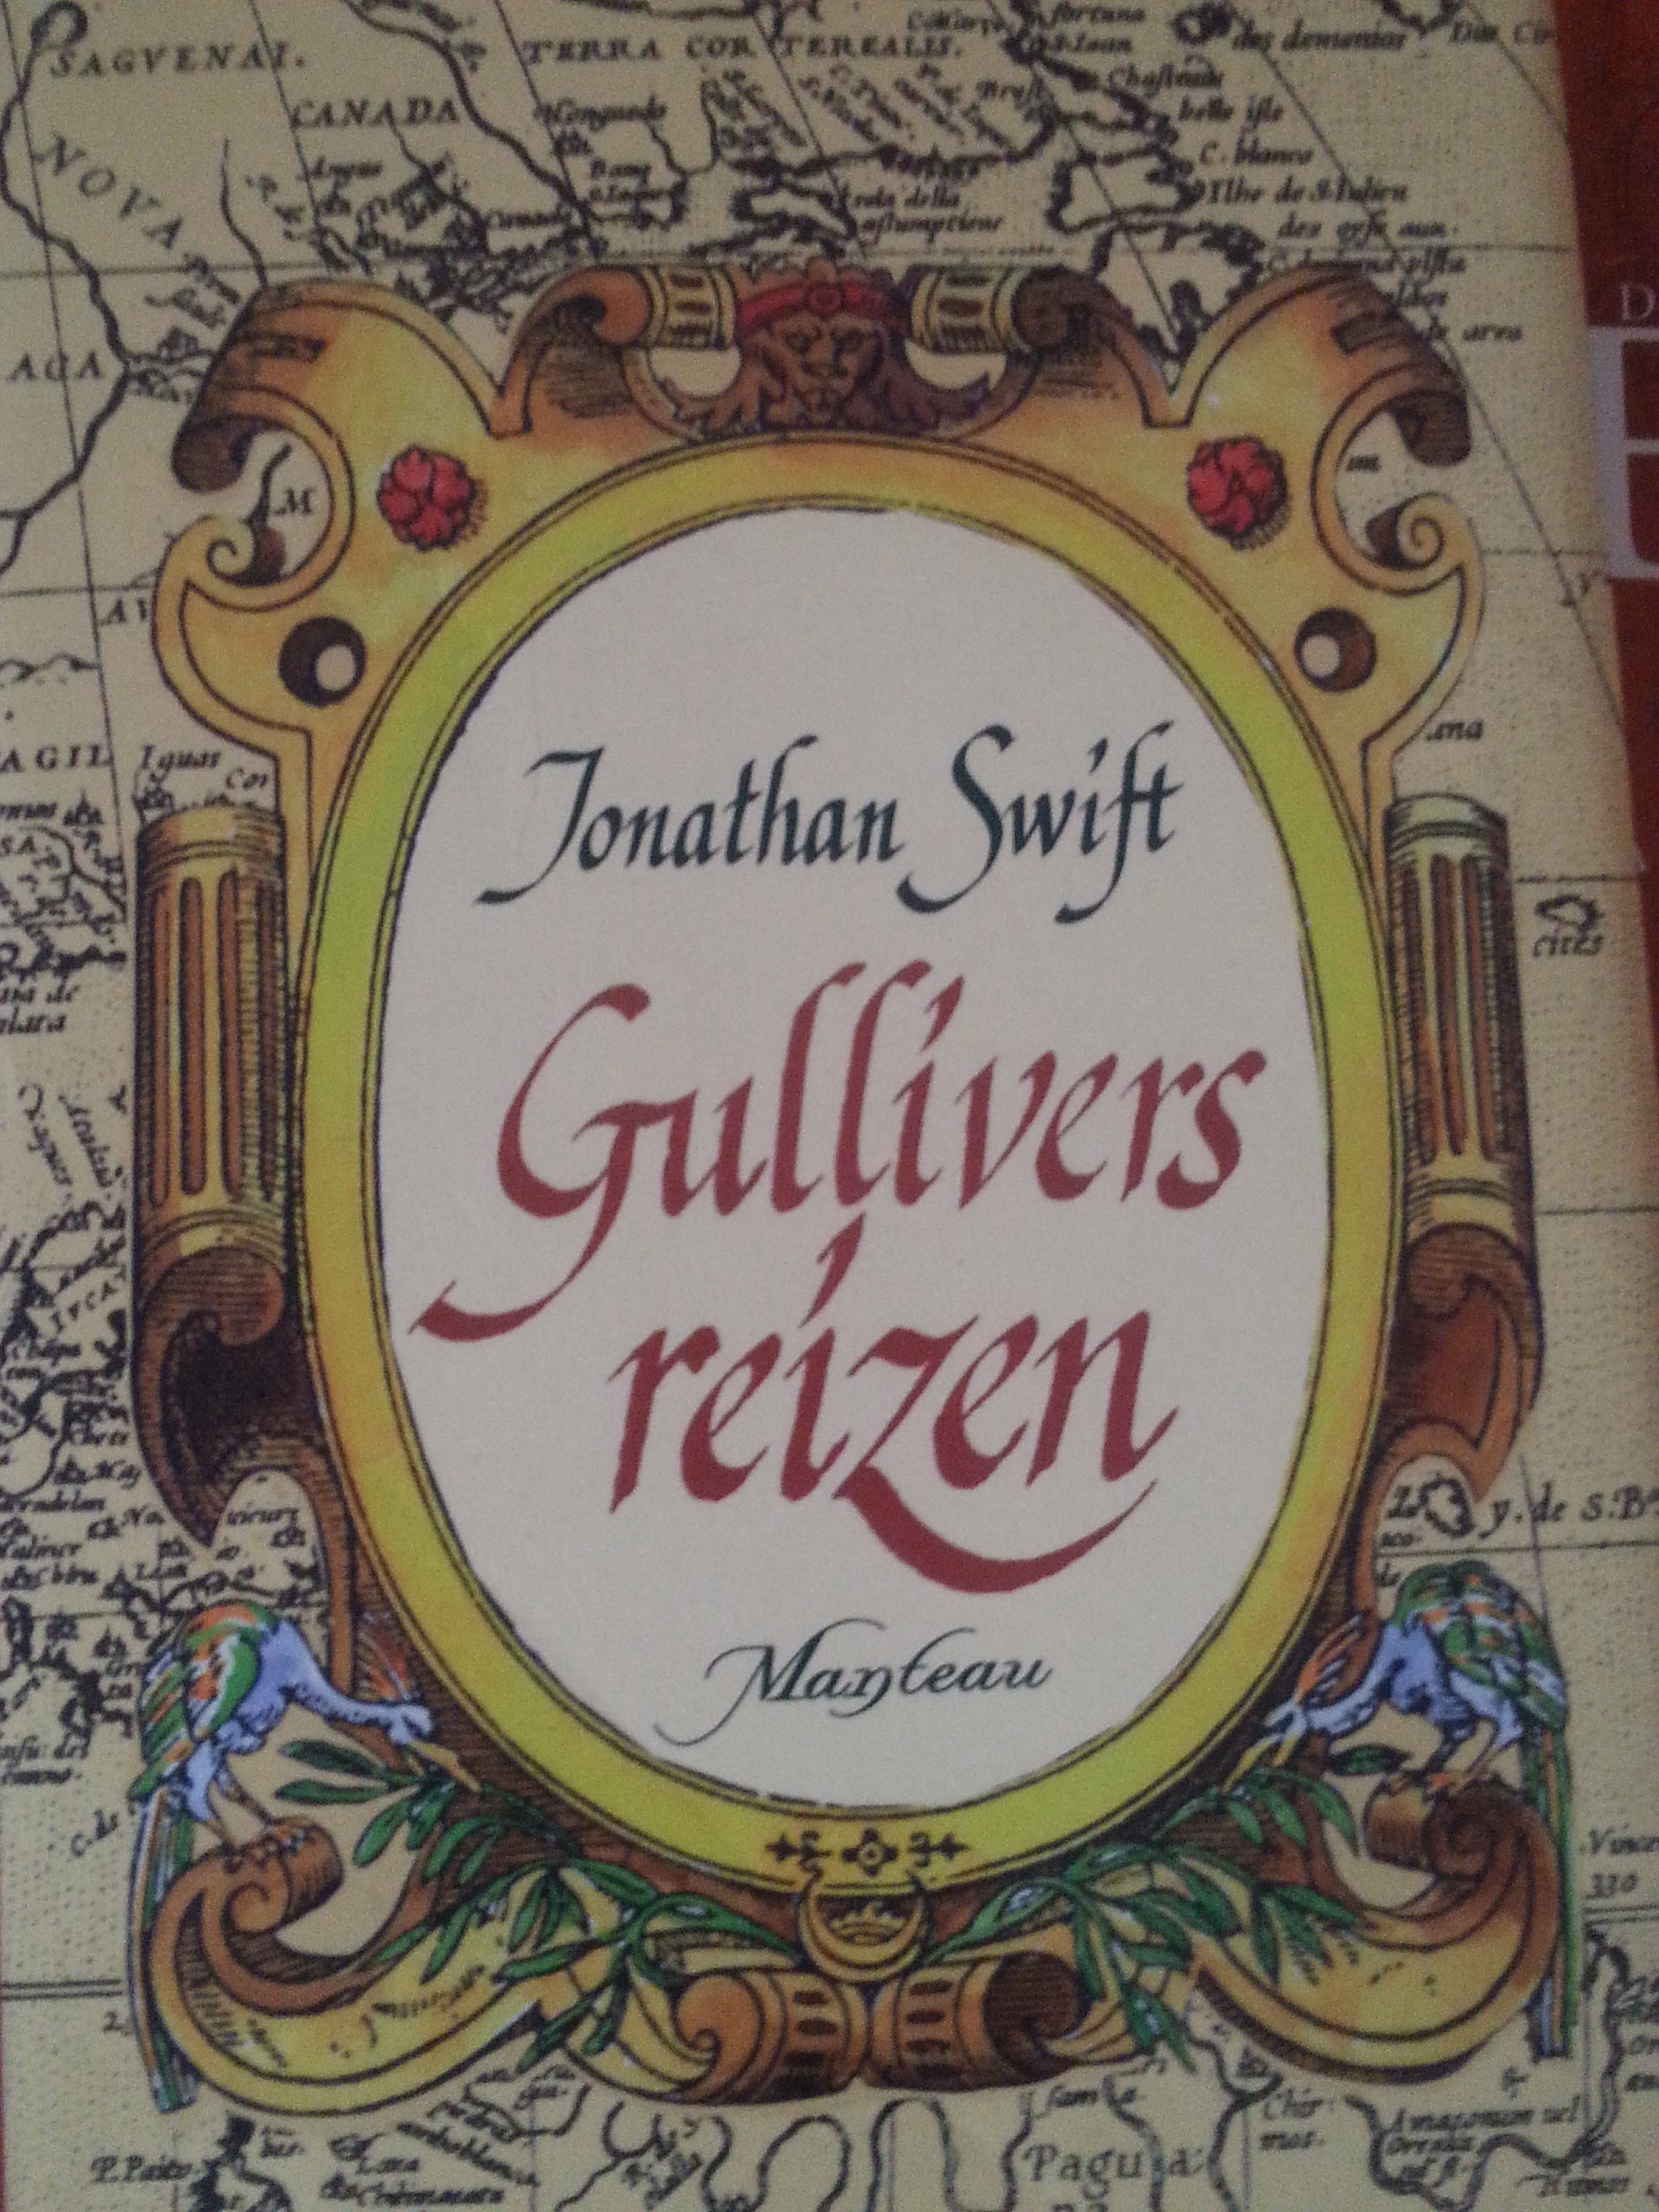 Gullivers travels by Jonathan Swift (a predecessor of modern phantasy literature...